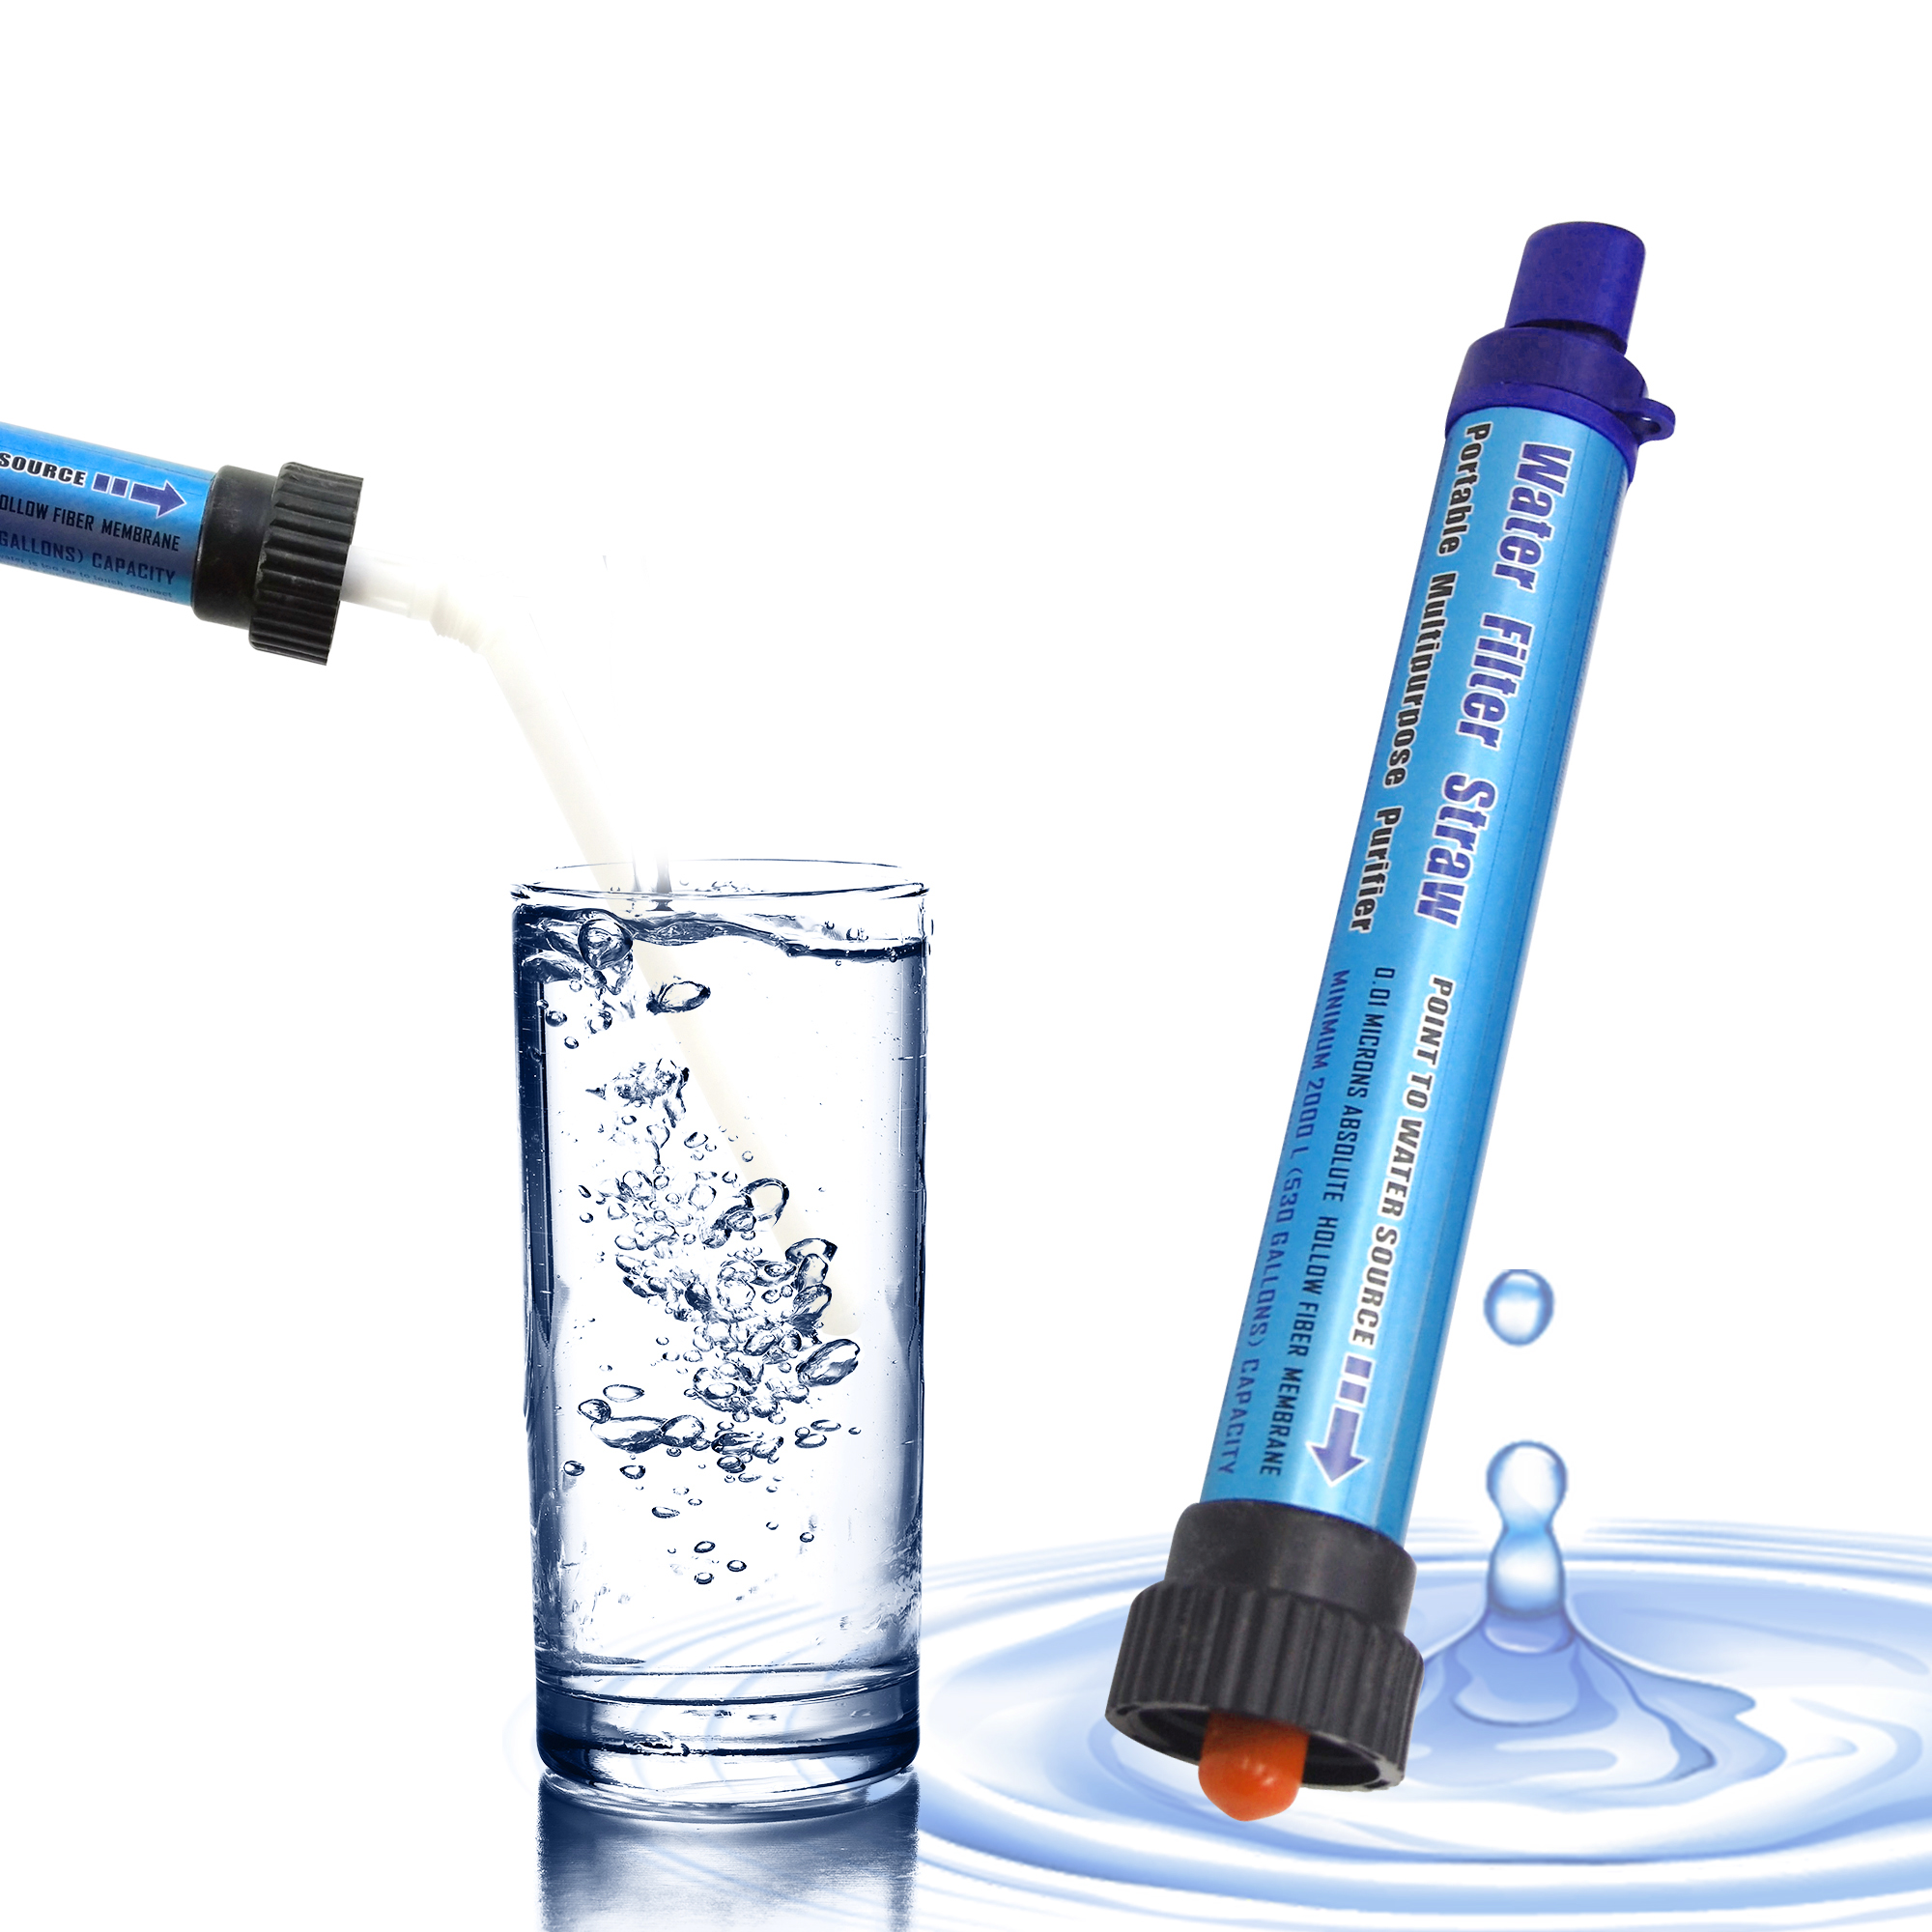 DeFe Personal Water Filter 2000L Portable Water Purification Straw Outdoor